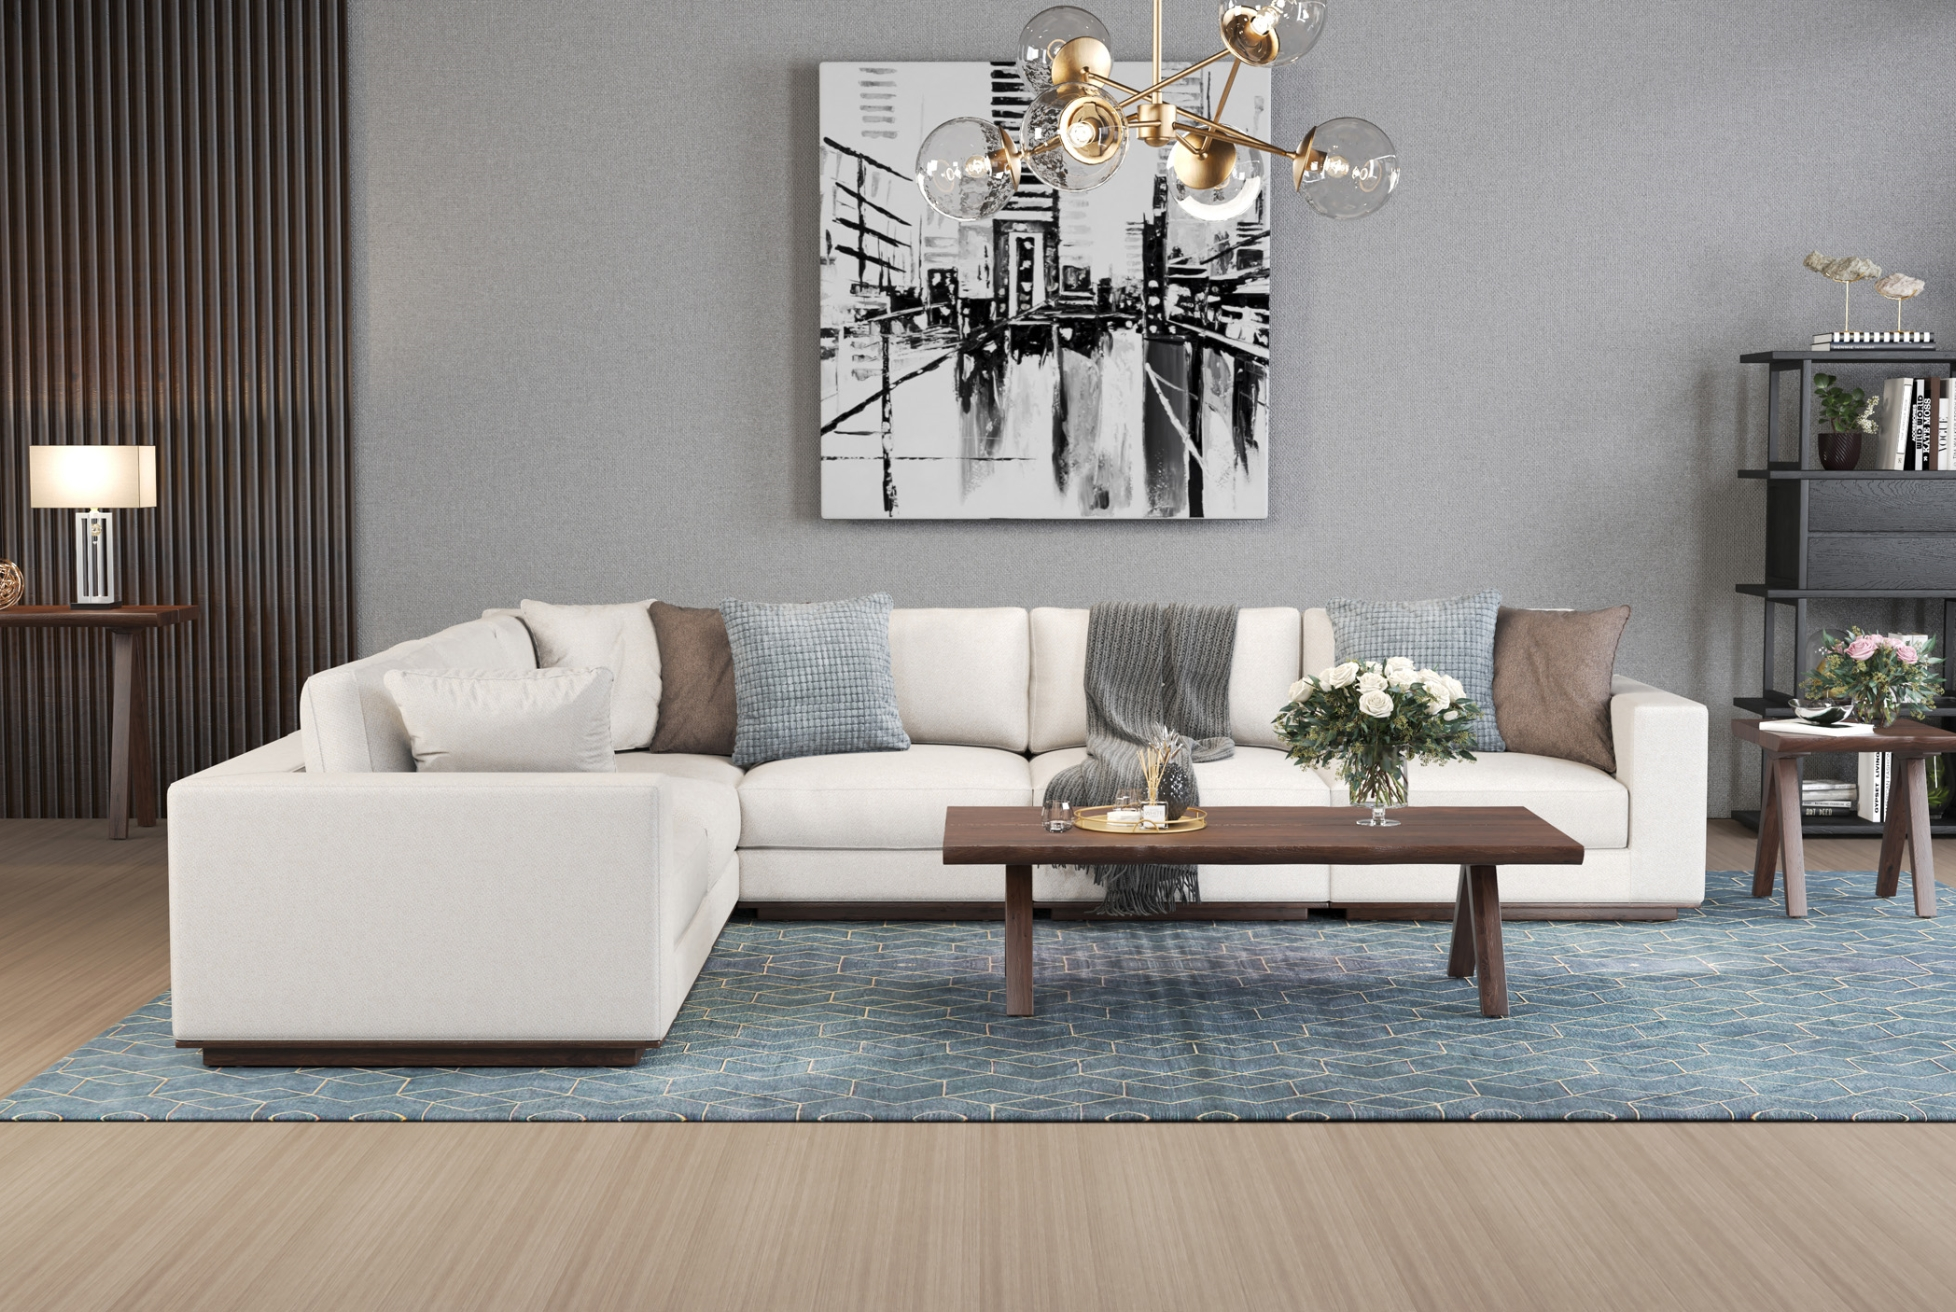 The Best Modular Sofa Solution for Your Living Room